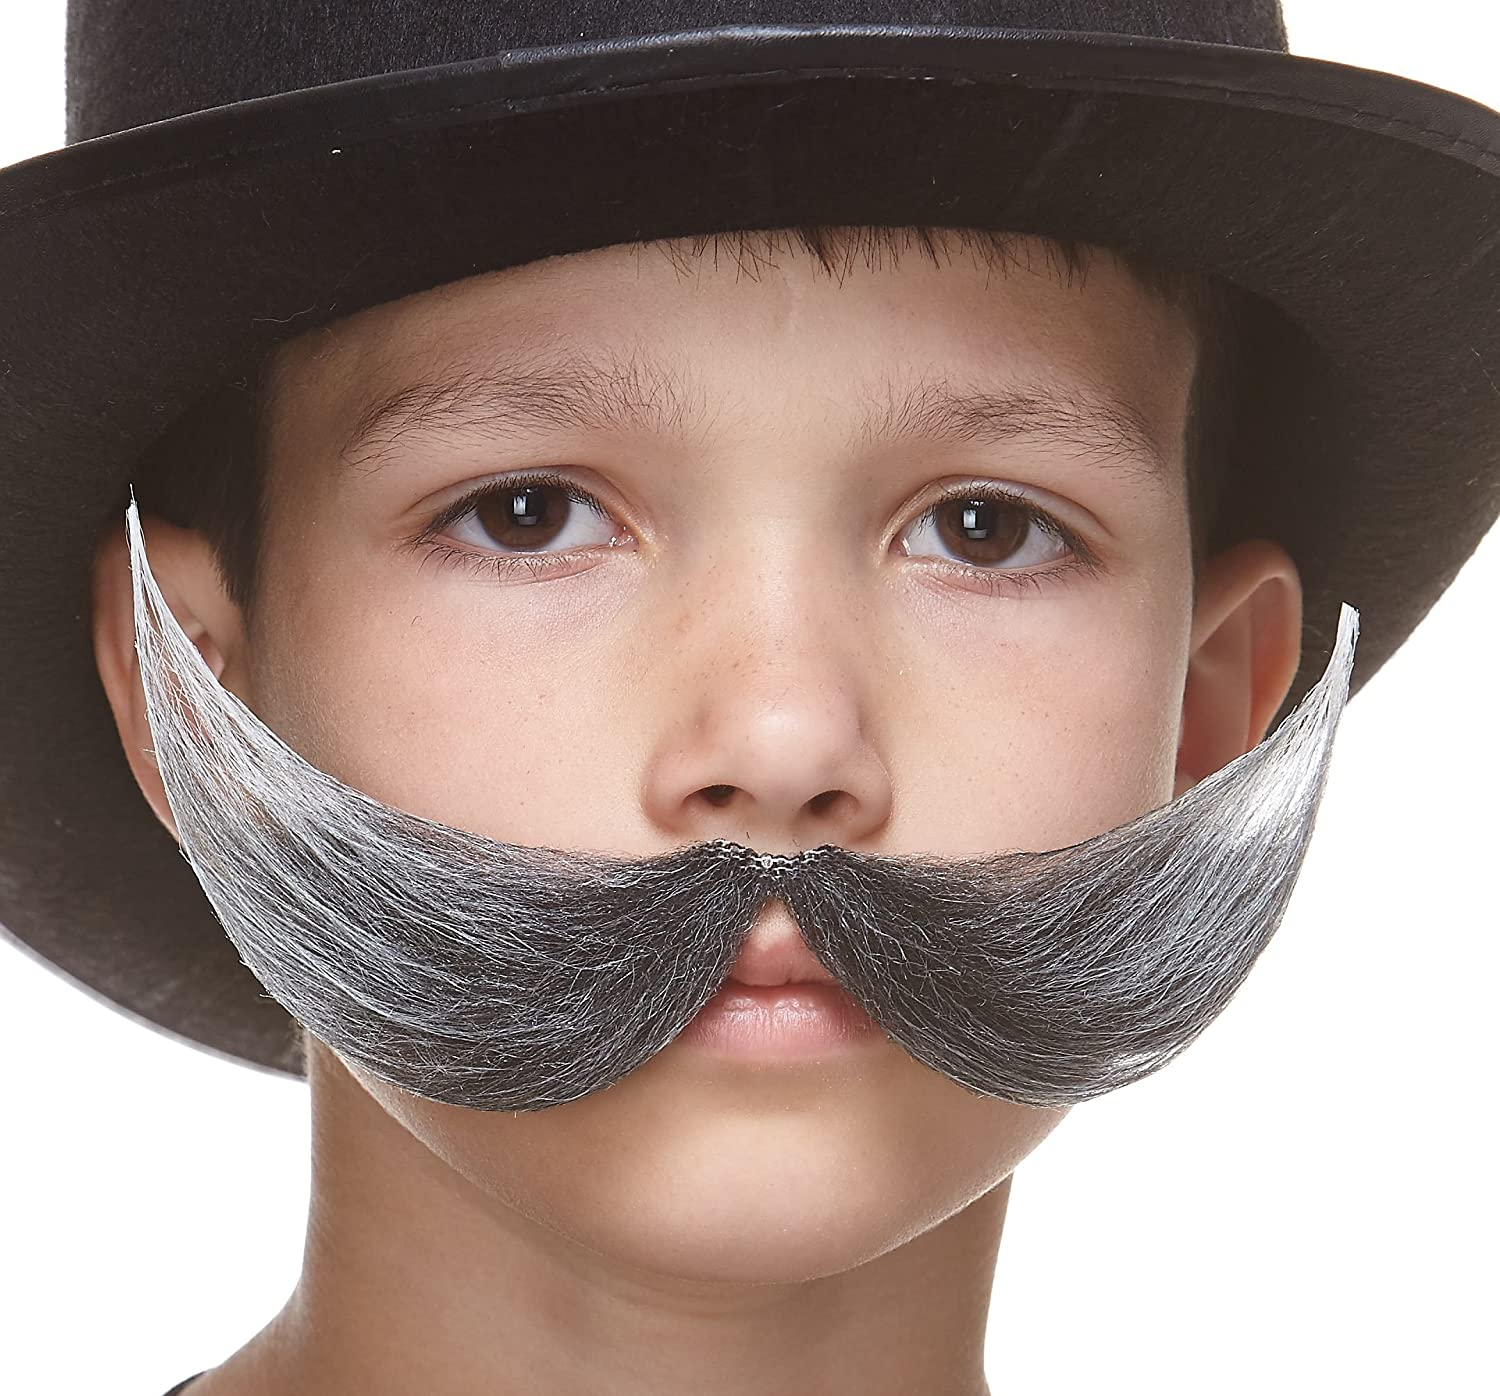 Self Adhesive Mustaches Fake Mustache Novelty Small Fishermans False Facial Hair Costume Accessory for Kids